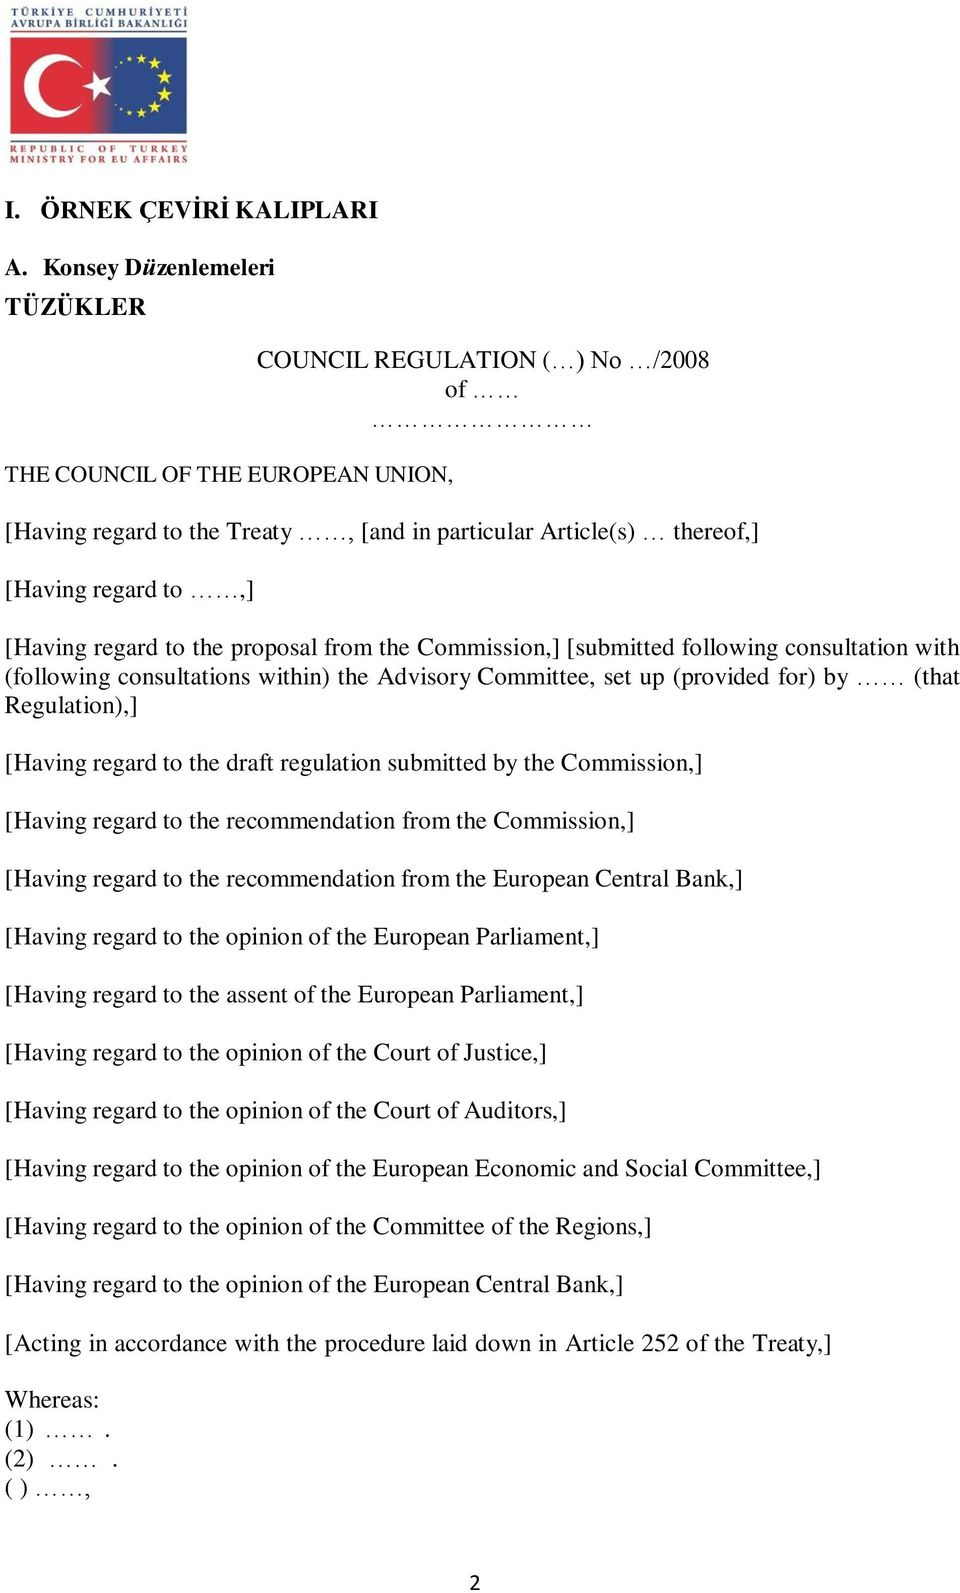 regard to the proposal from the Commission,] [submitted following consultation with (following consultations within) the Advisory Committee, set up (provided for) by (that Regulation),] [Having